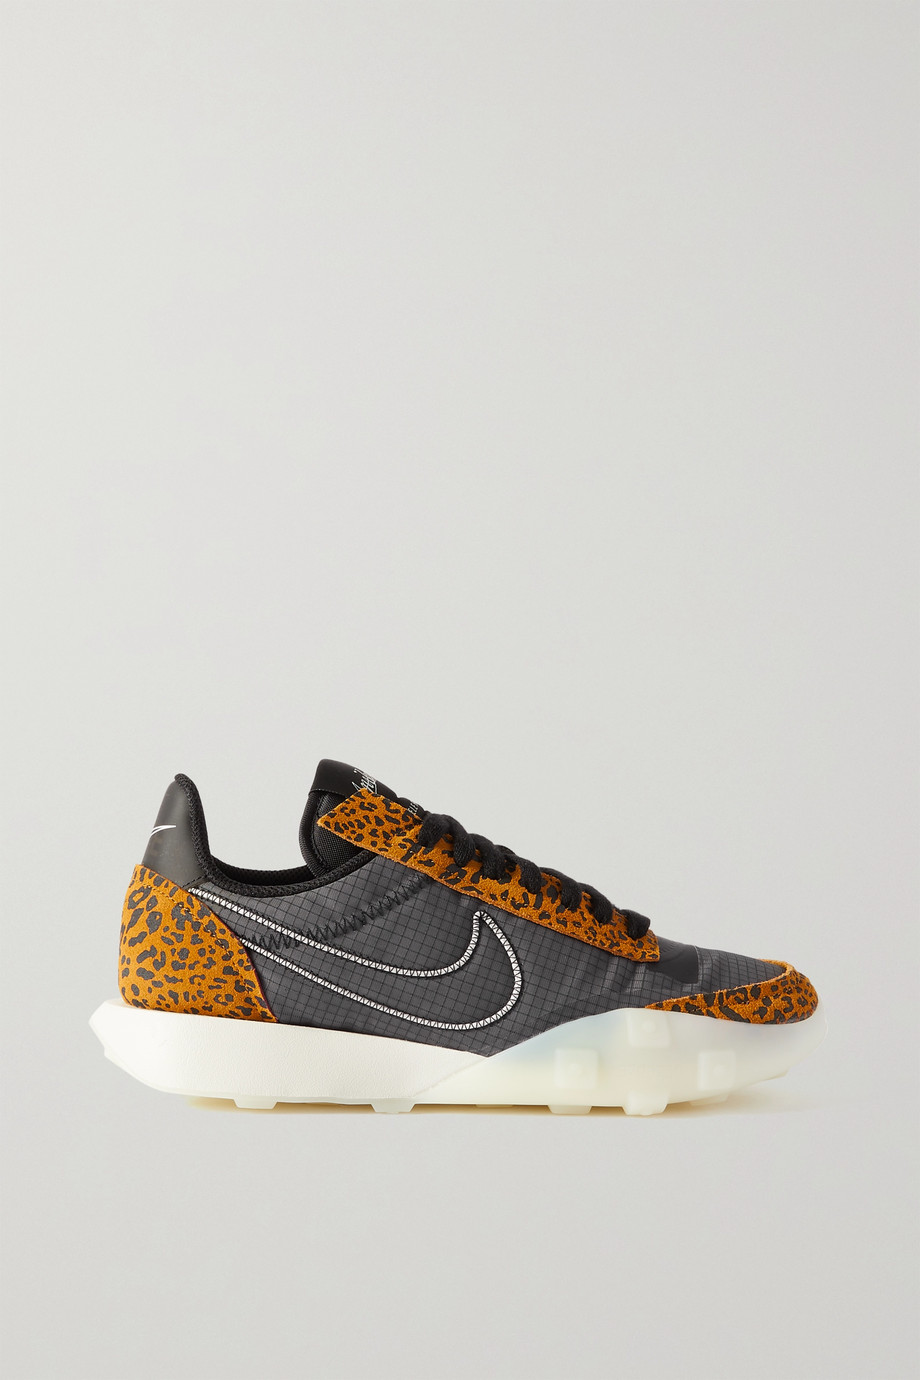 Nike Waffle Racer 2X ripstop and leopard-print suede sneakers